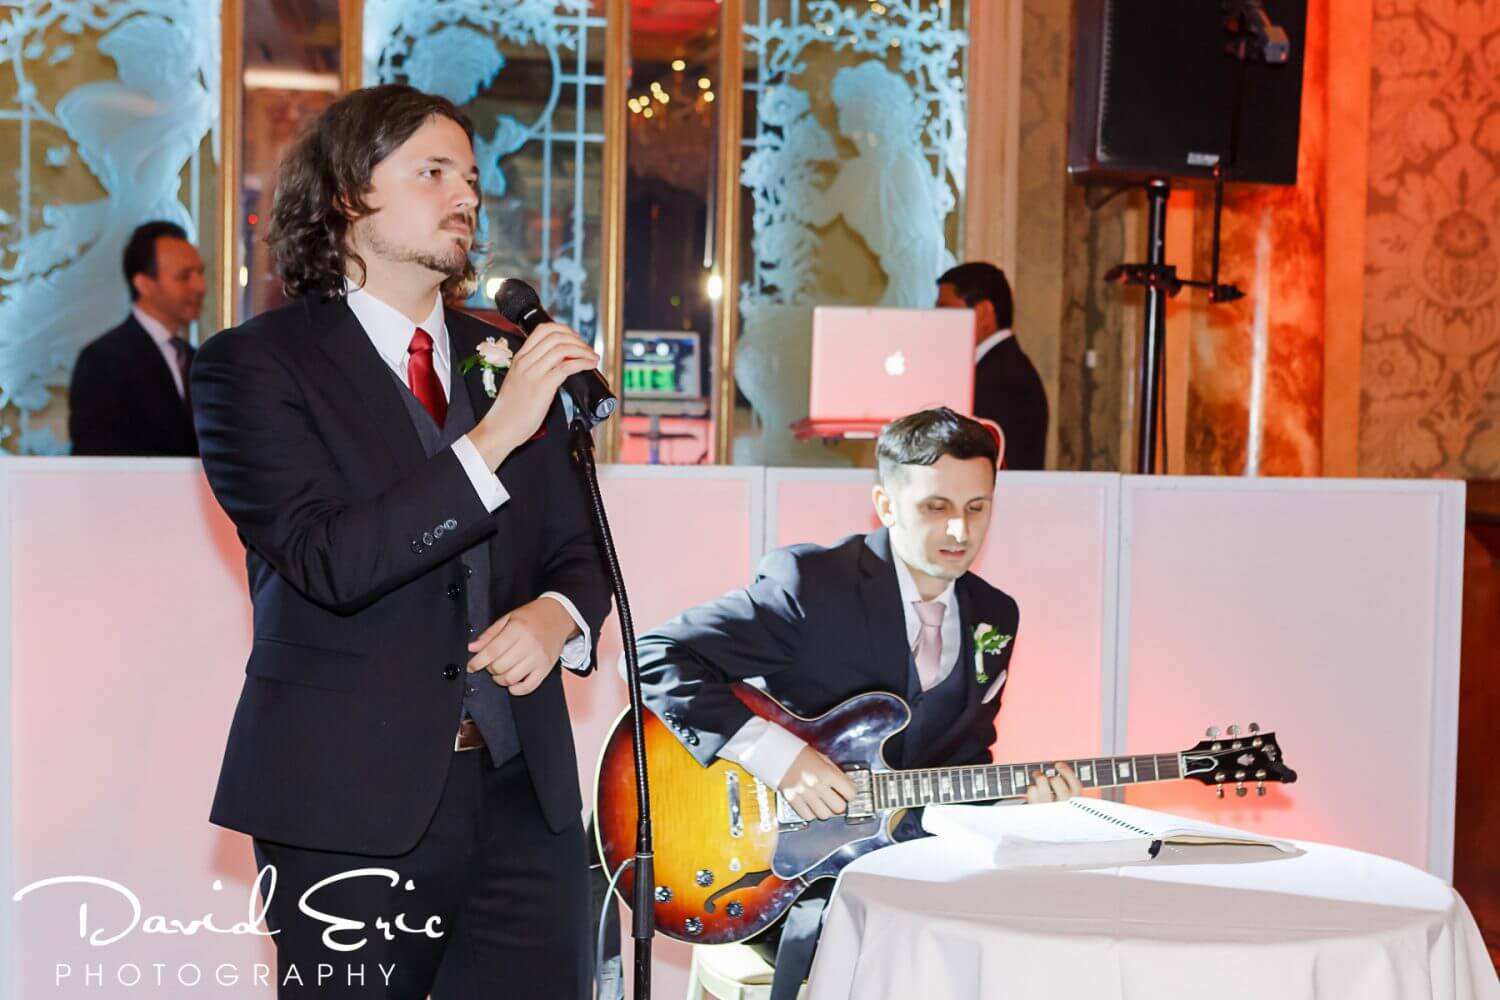 Family playing music at New Jersey wedding reception